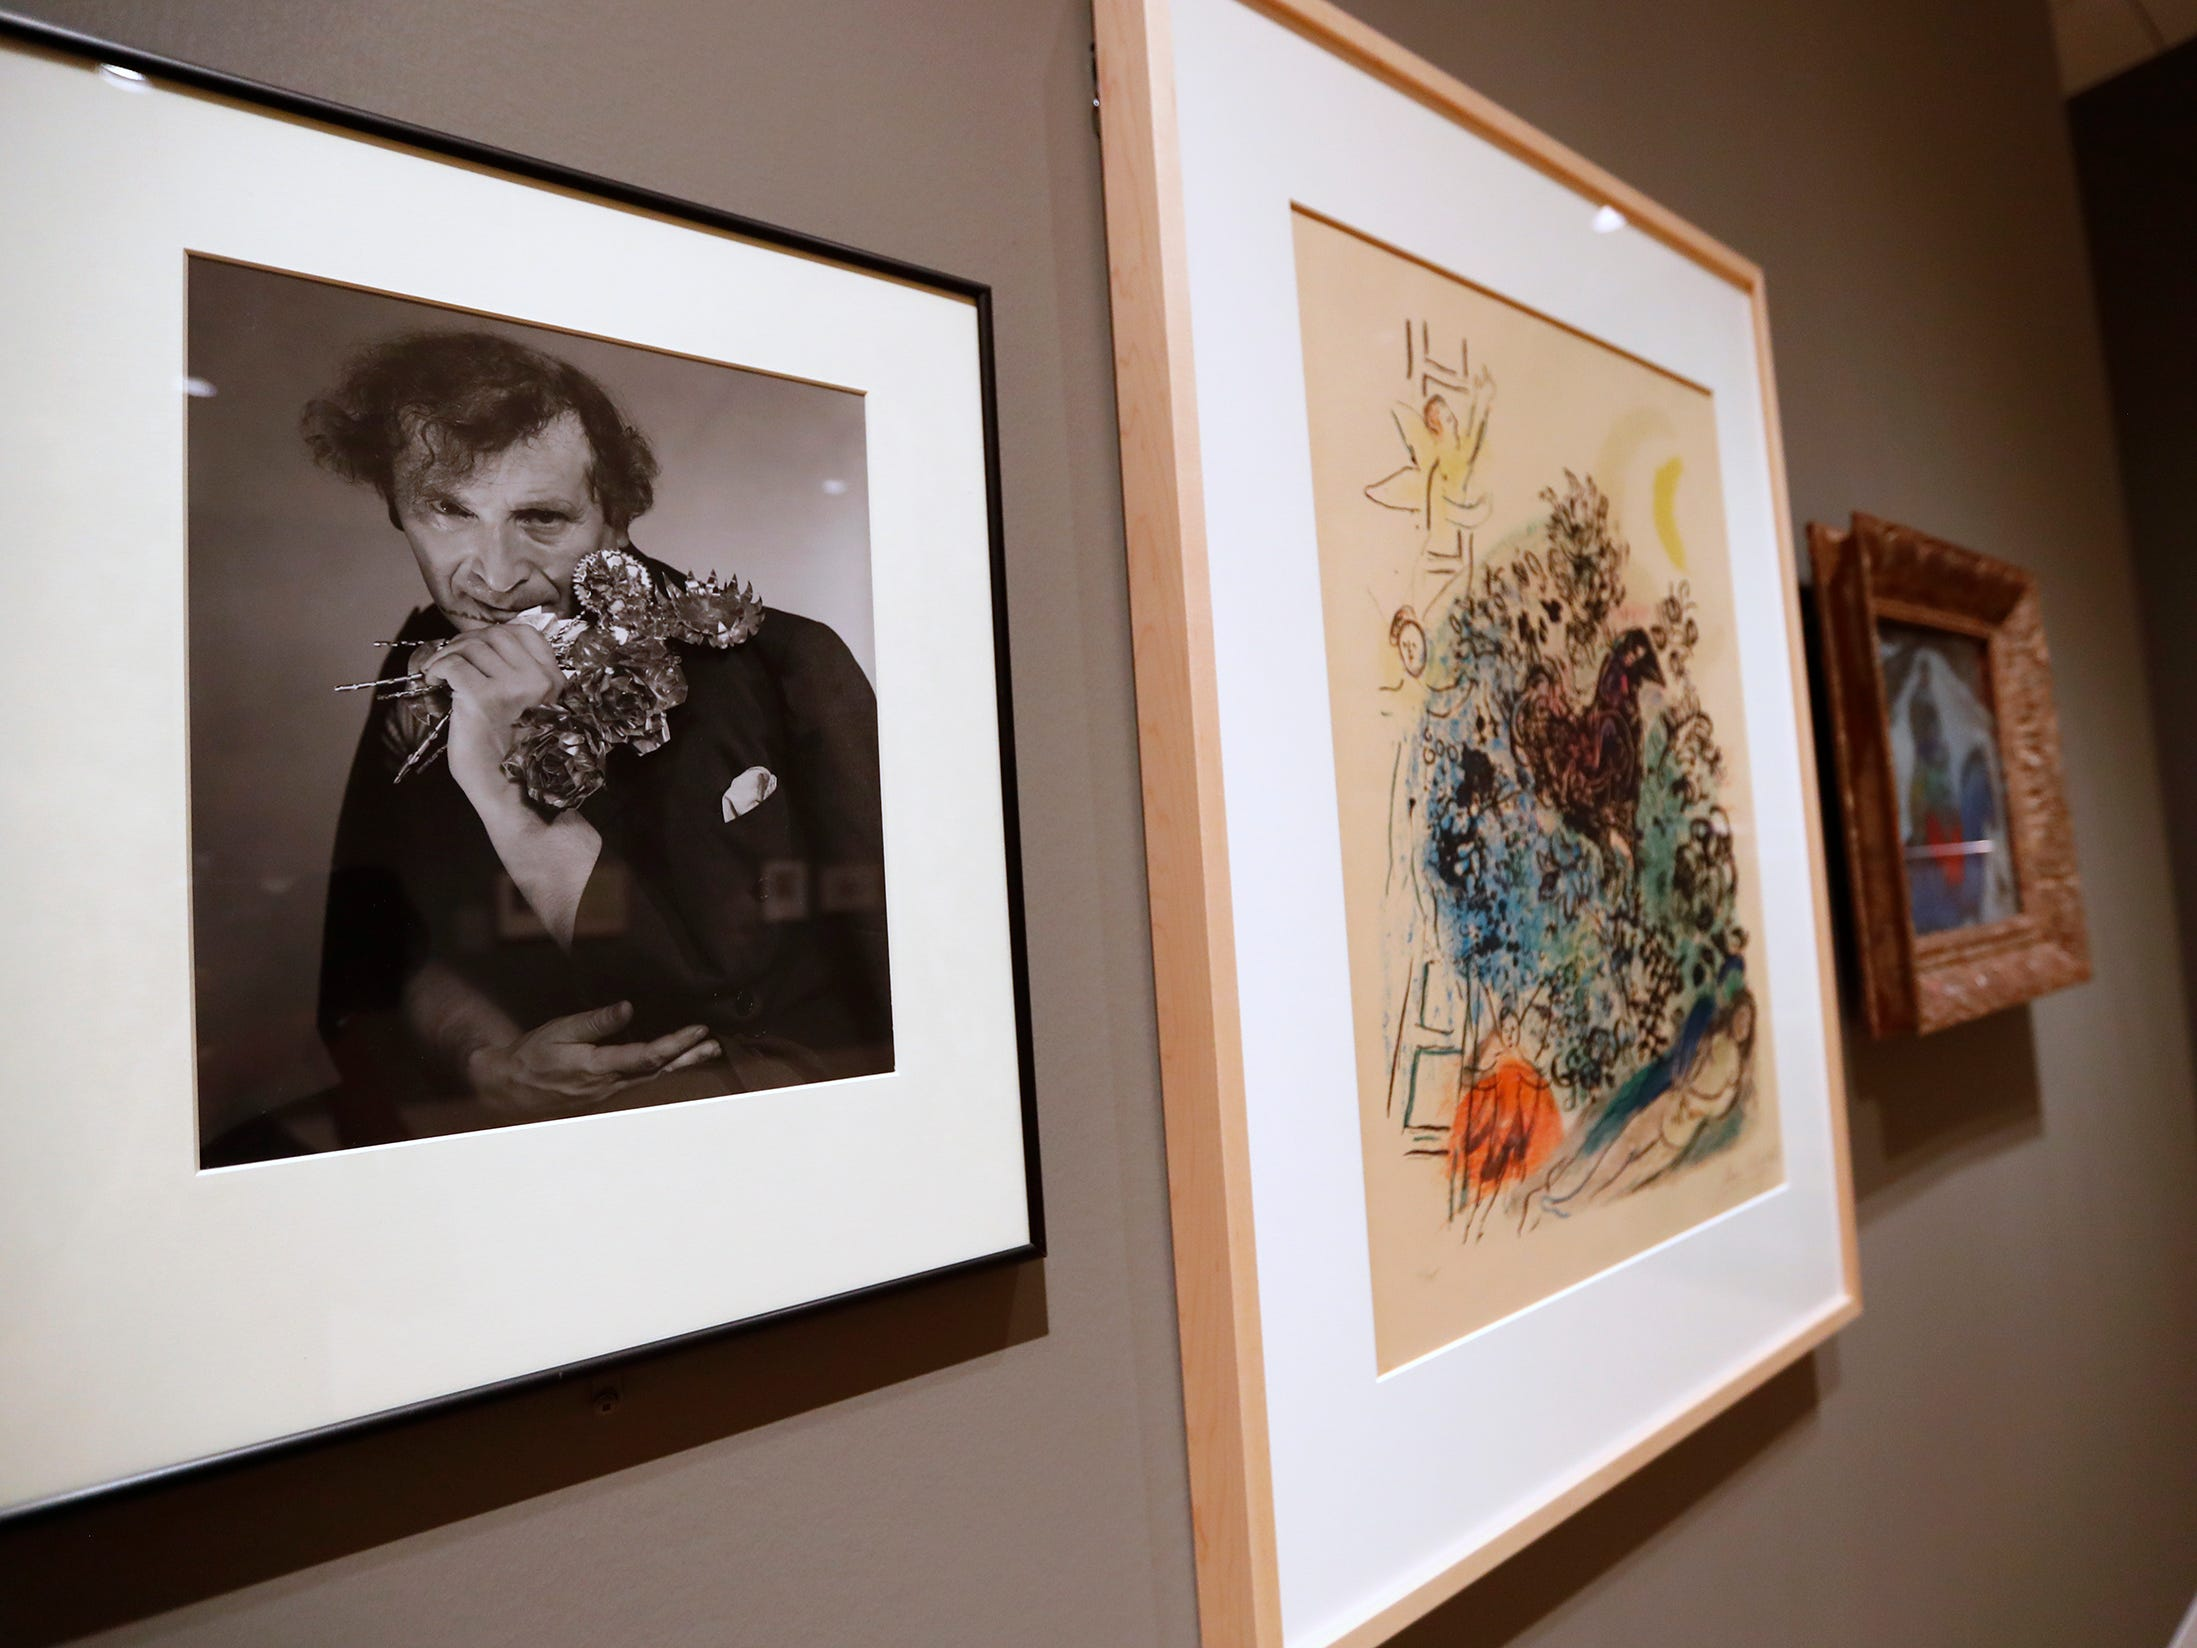 "This undated portrait of artist Marc Chagall, by George Platt Lynes, is exhibited with Chagall's 1961 color lithograph called ""Lover's Dream,"" and his 1943-44 oil on canvas called, ""The Flight into Egypt,"" seen at the George Platt Lynes exhibit at Newfields, Wednesday, Sept. 26, 2018.  The photograph is from the Collections of the Kinsey Institute, Indiana University; a gift of Gene L. and Jane E. Rench Prather.  Lynes gained fame as a commercial and ballet photographer in the 1930s and 1940s, but he wanted to be known for the male nudes he captured of the male ballet dancers and others.  The exhibit runs Sept. 30, 2018 through Feb. 24, 2019."